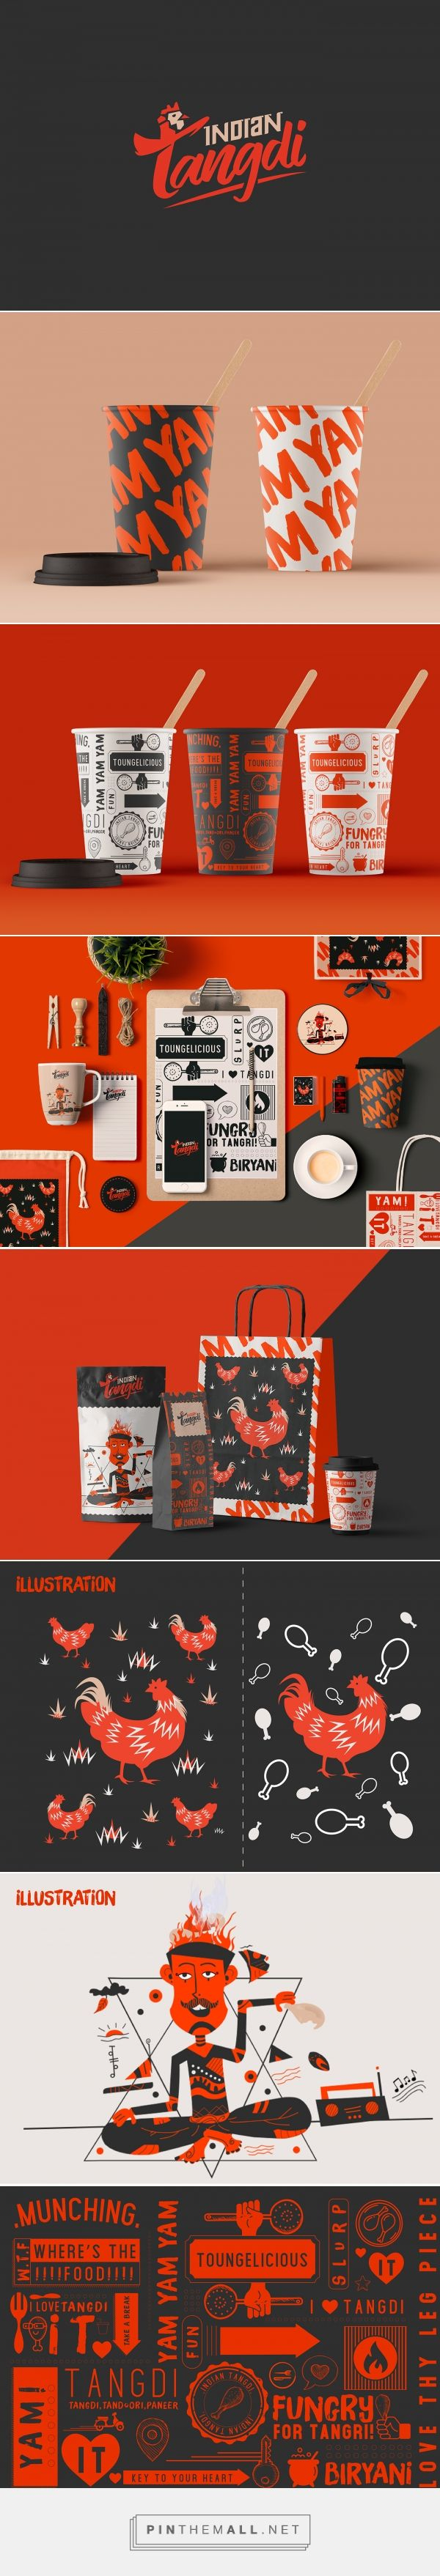 Indian Tangdi Restaurant Branding by Dimpy Verma | Fivestar Branding Agency – Design and Branding Agency & Curated Inspiration Gallery